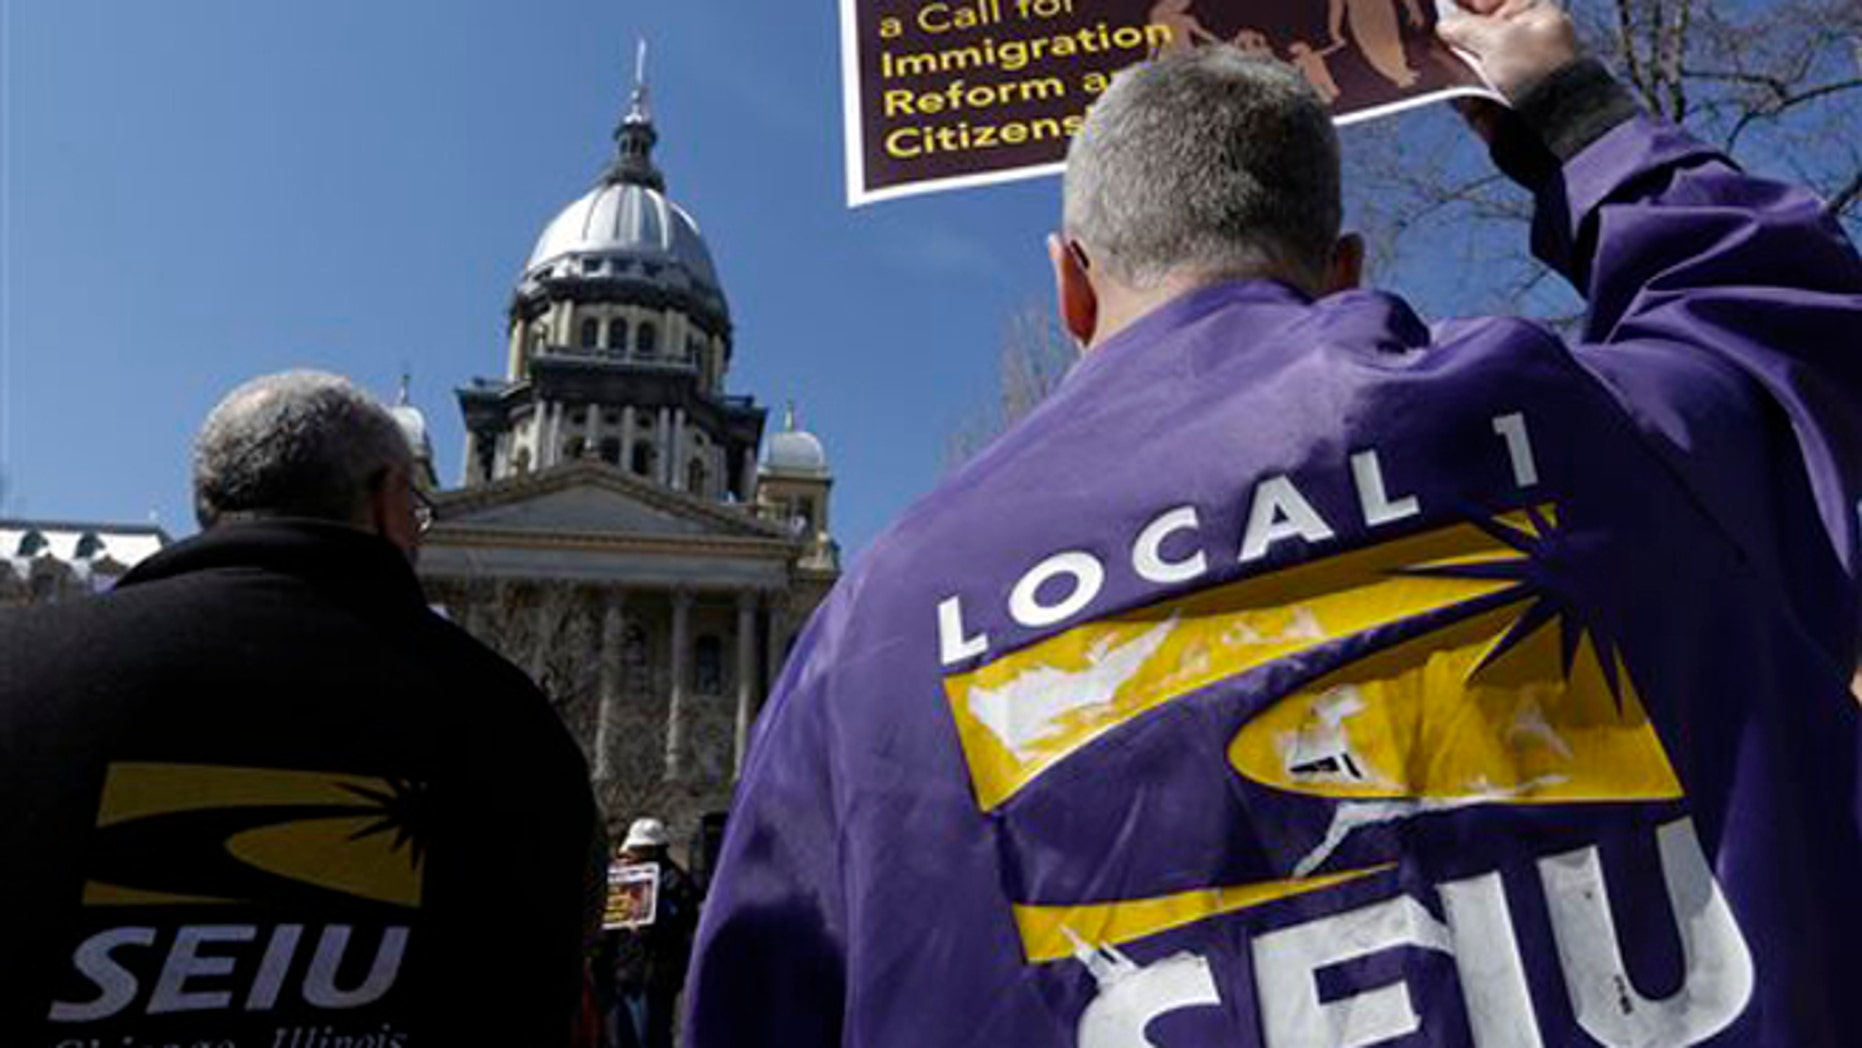 FILE - In this March 20, 2014 file photo, members of the Service Employees International Union, SIEU, rally in front of the Illinois State Capitol in support of Immigration reform in Springfield, Ill. Unions across the U.S. are reaching out to immigrants affected by President Obamaâs recent executive action in hopes of expanding their dwindling ranks by recruiting millions of workers who entered the U.S. illegally. Labor leaders say the action will give new protection to workers whoâve been reluctant to join for fear of retaliation. The action curbs deportation and gives work permits to some 4 million immigrants. (AP Photo/Seth Perlman,File)